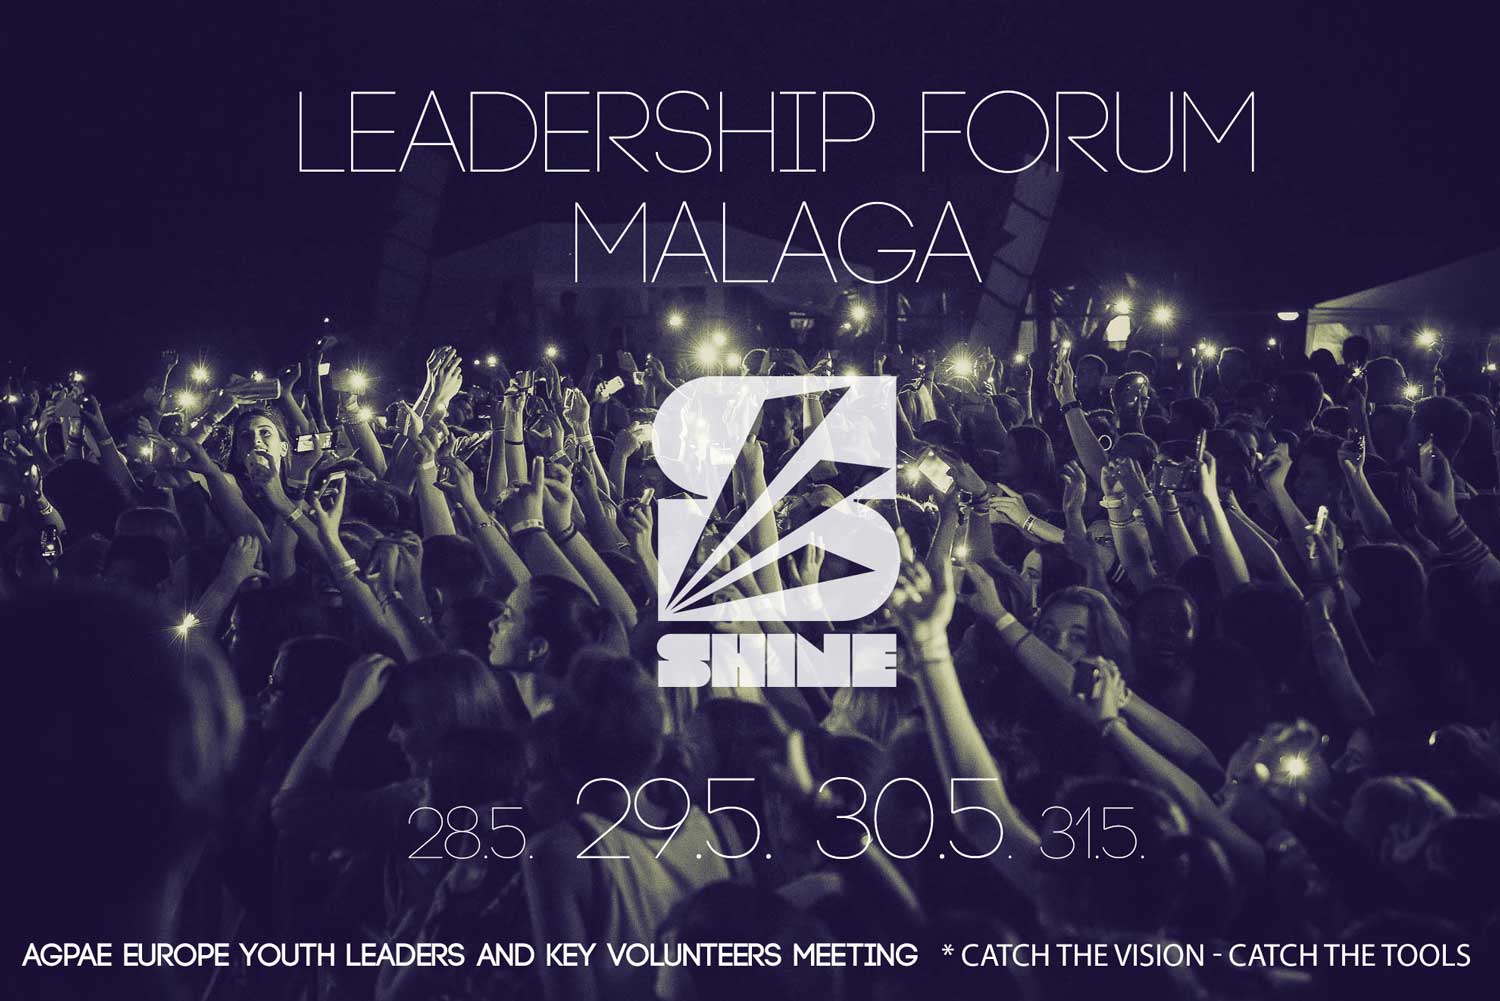 LEADERSHIPforum15